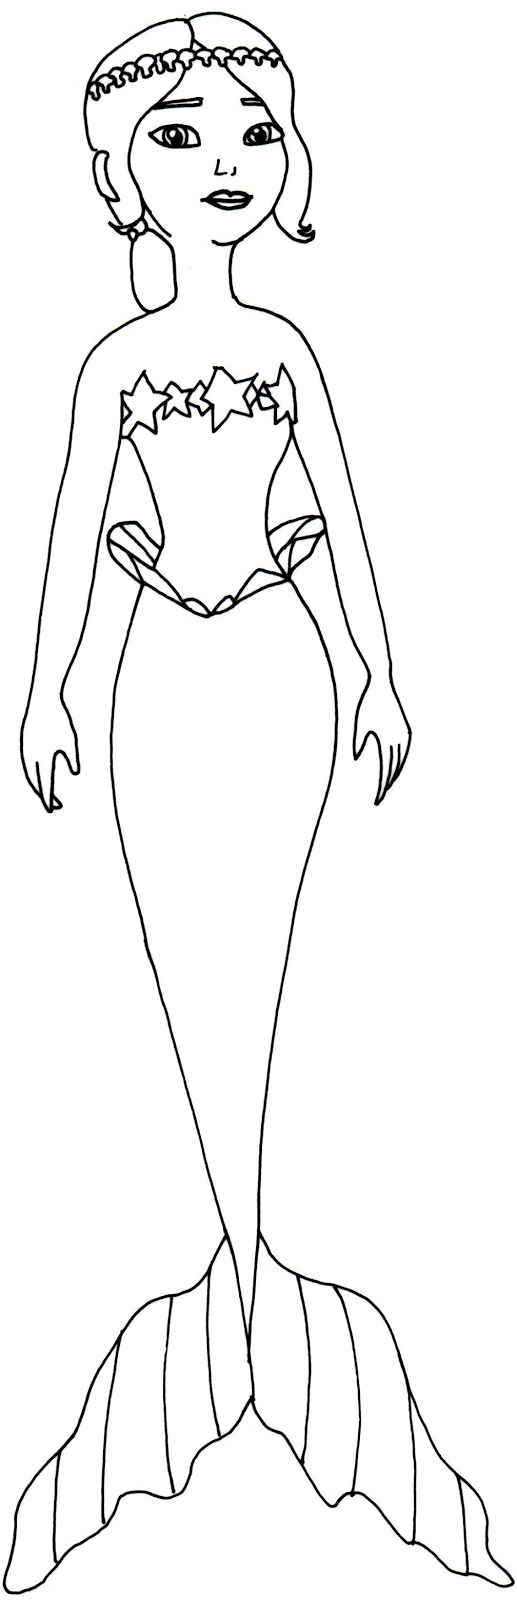 Mermaid Coloring Pages Princess Coloring Pages Disney Coloring Pages Printables